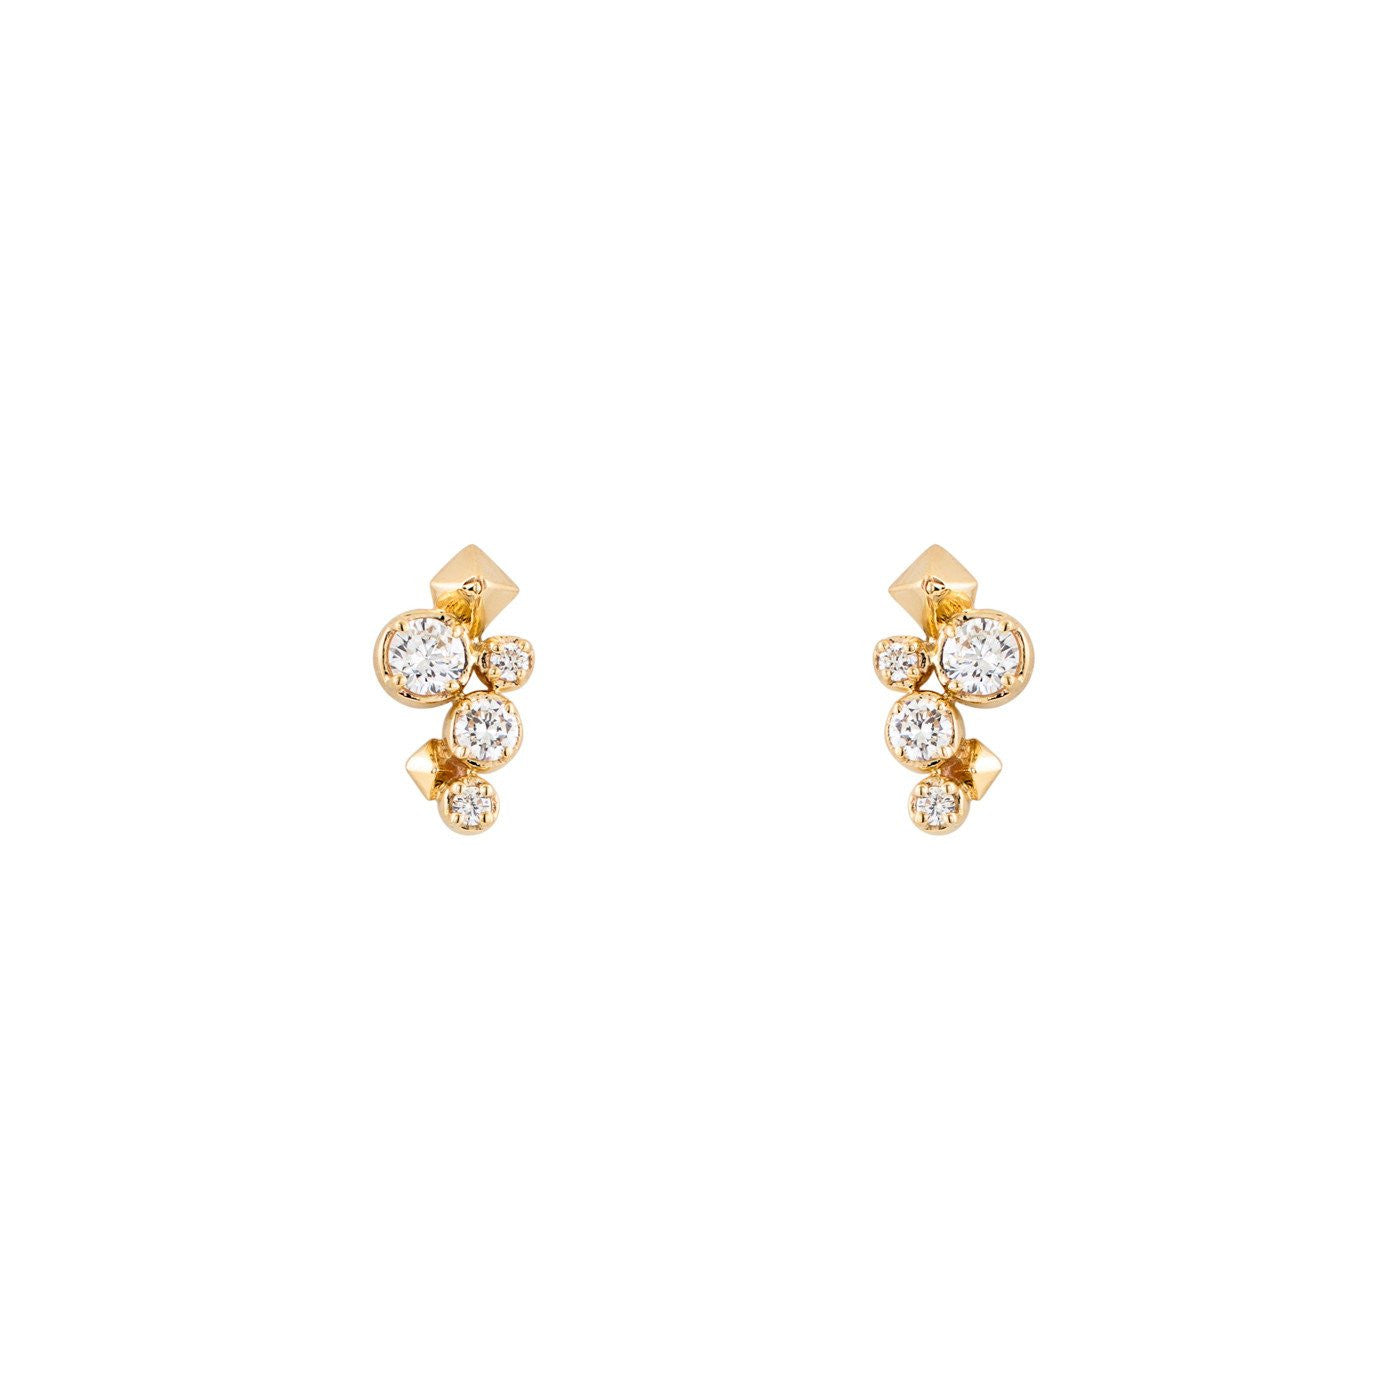 Image of Large Spike & Ice Stud Earrings